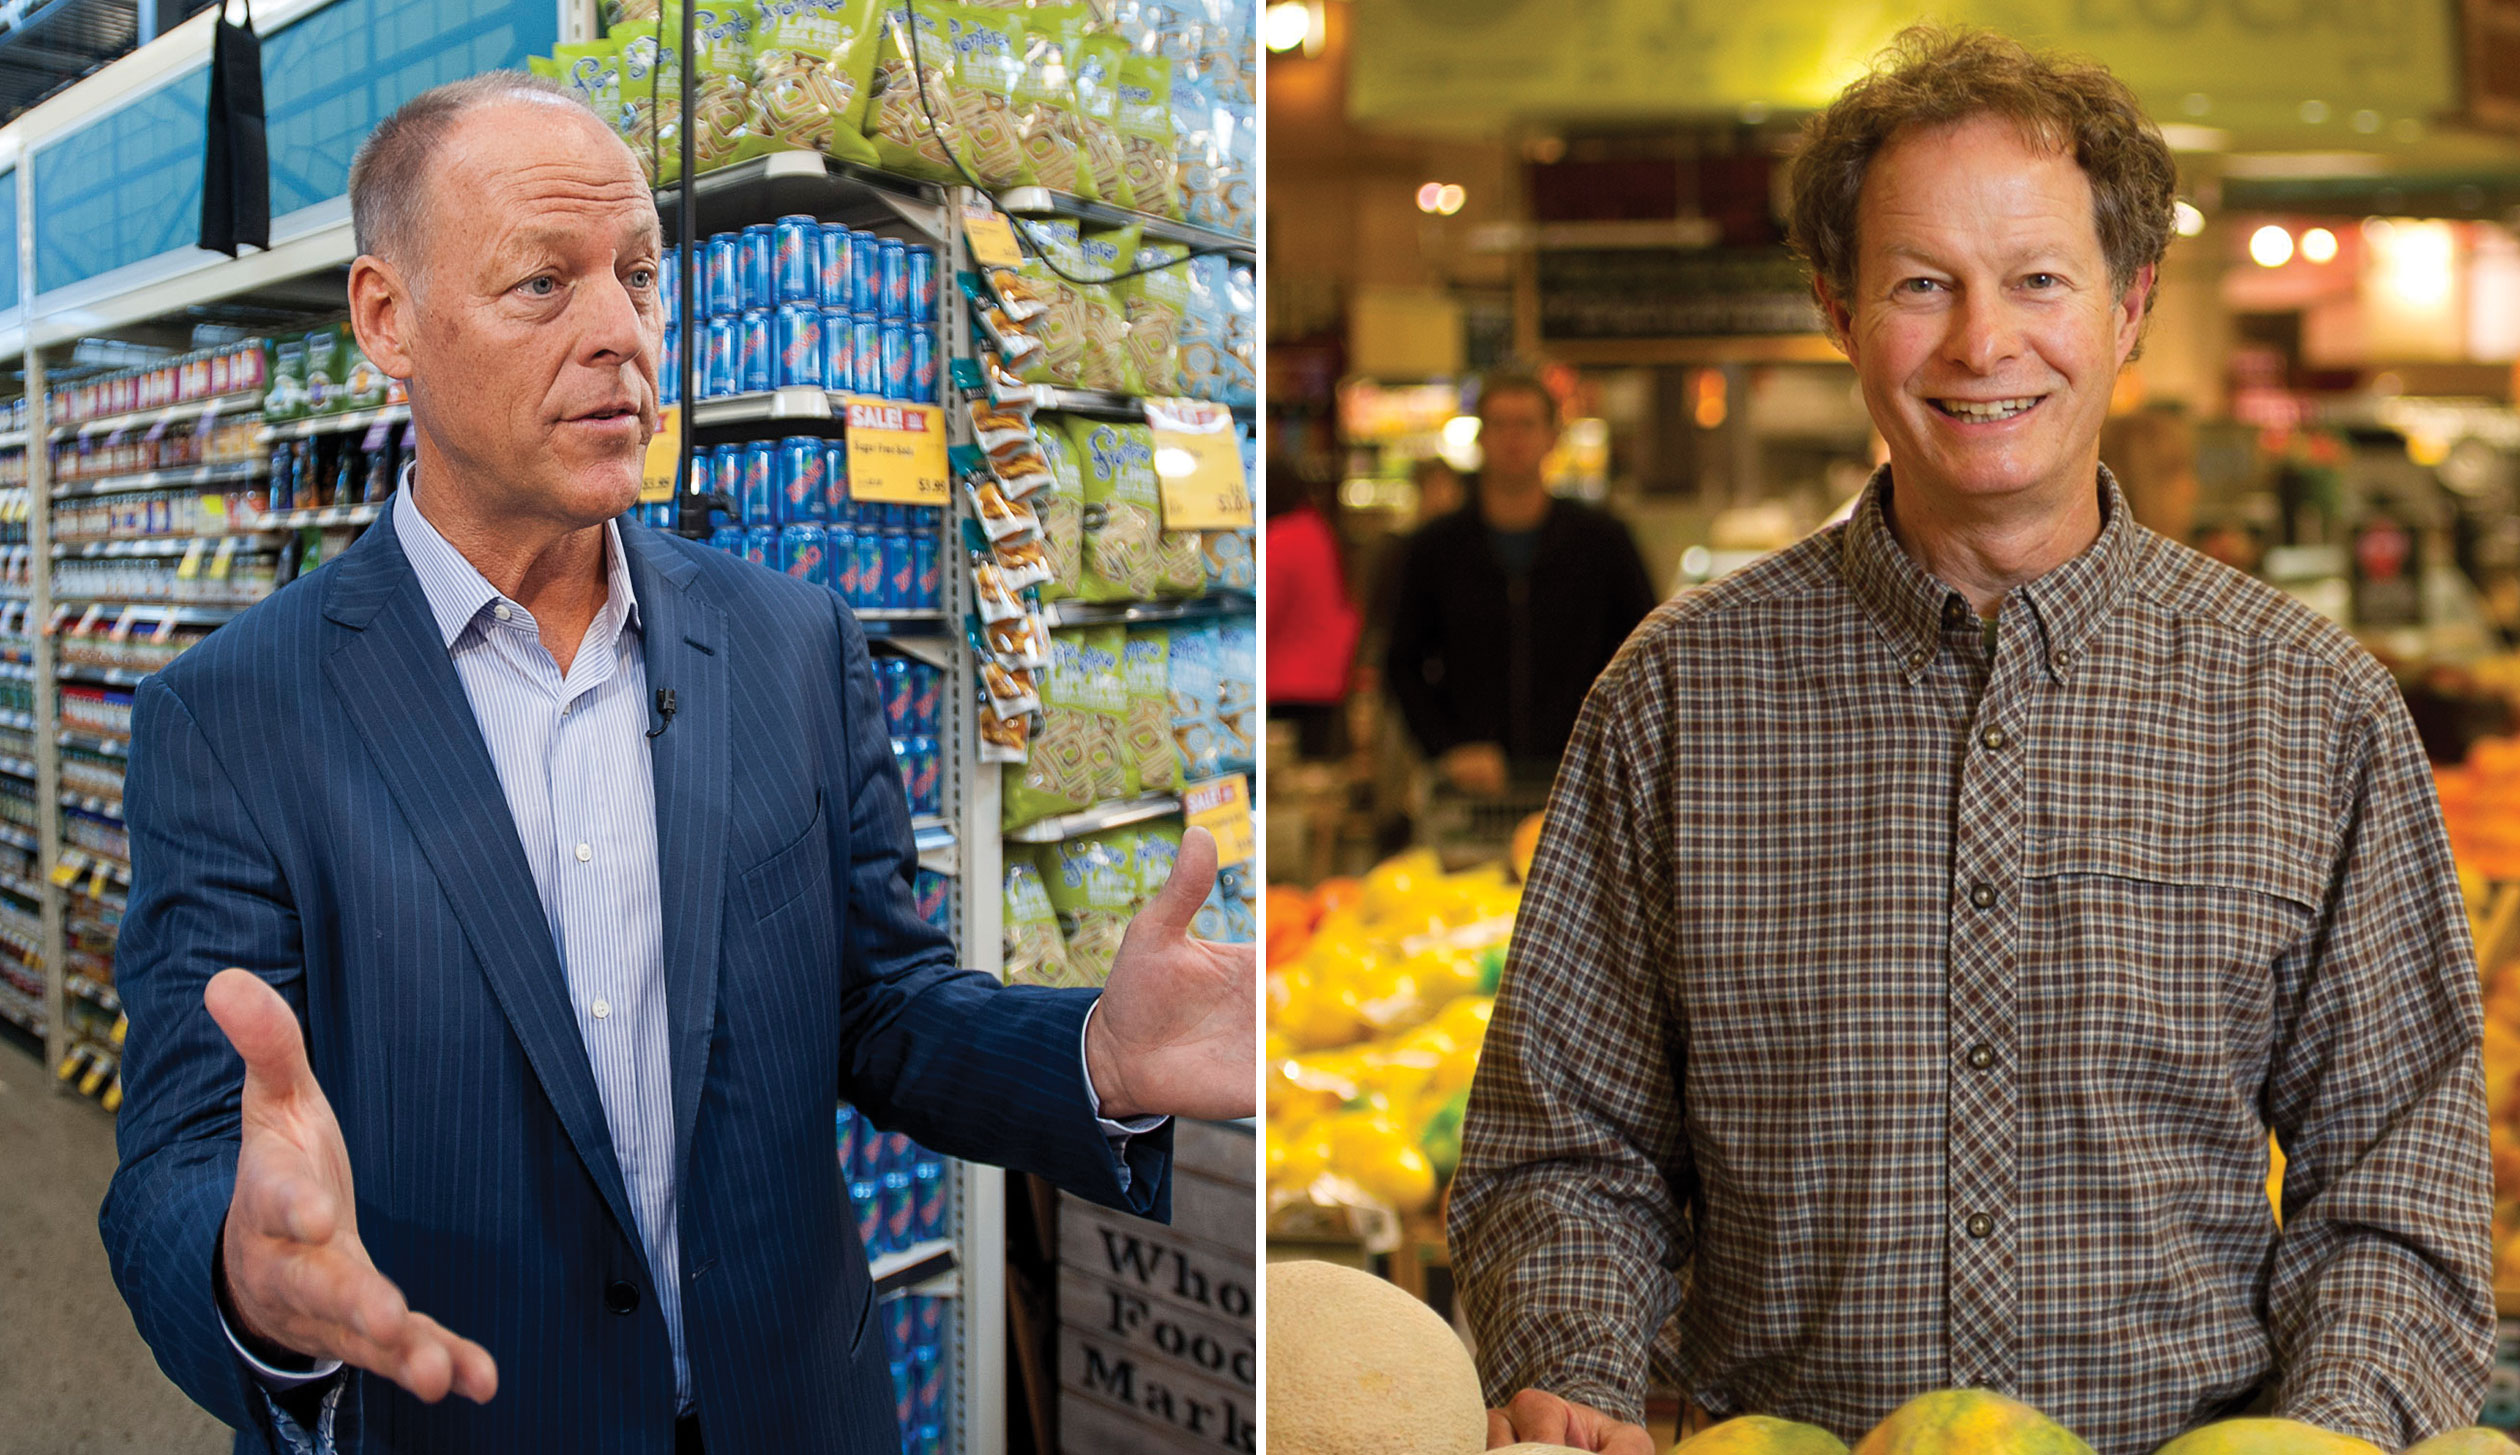 Walter Robb, left, and John Mackey of Whole Foods.